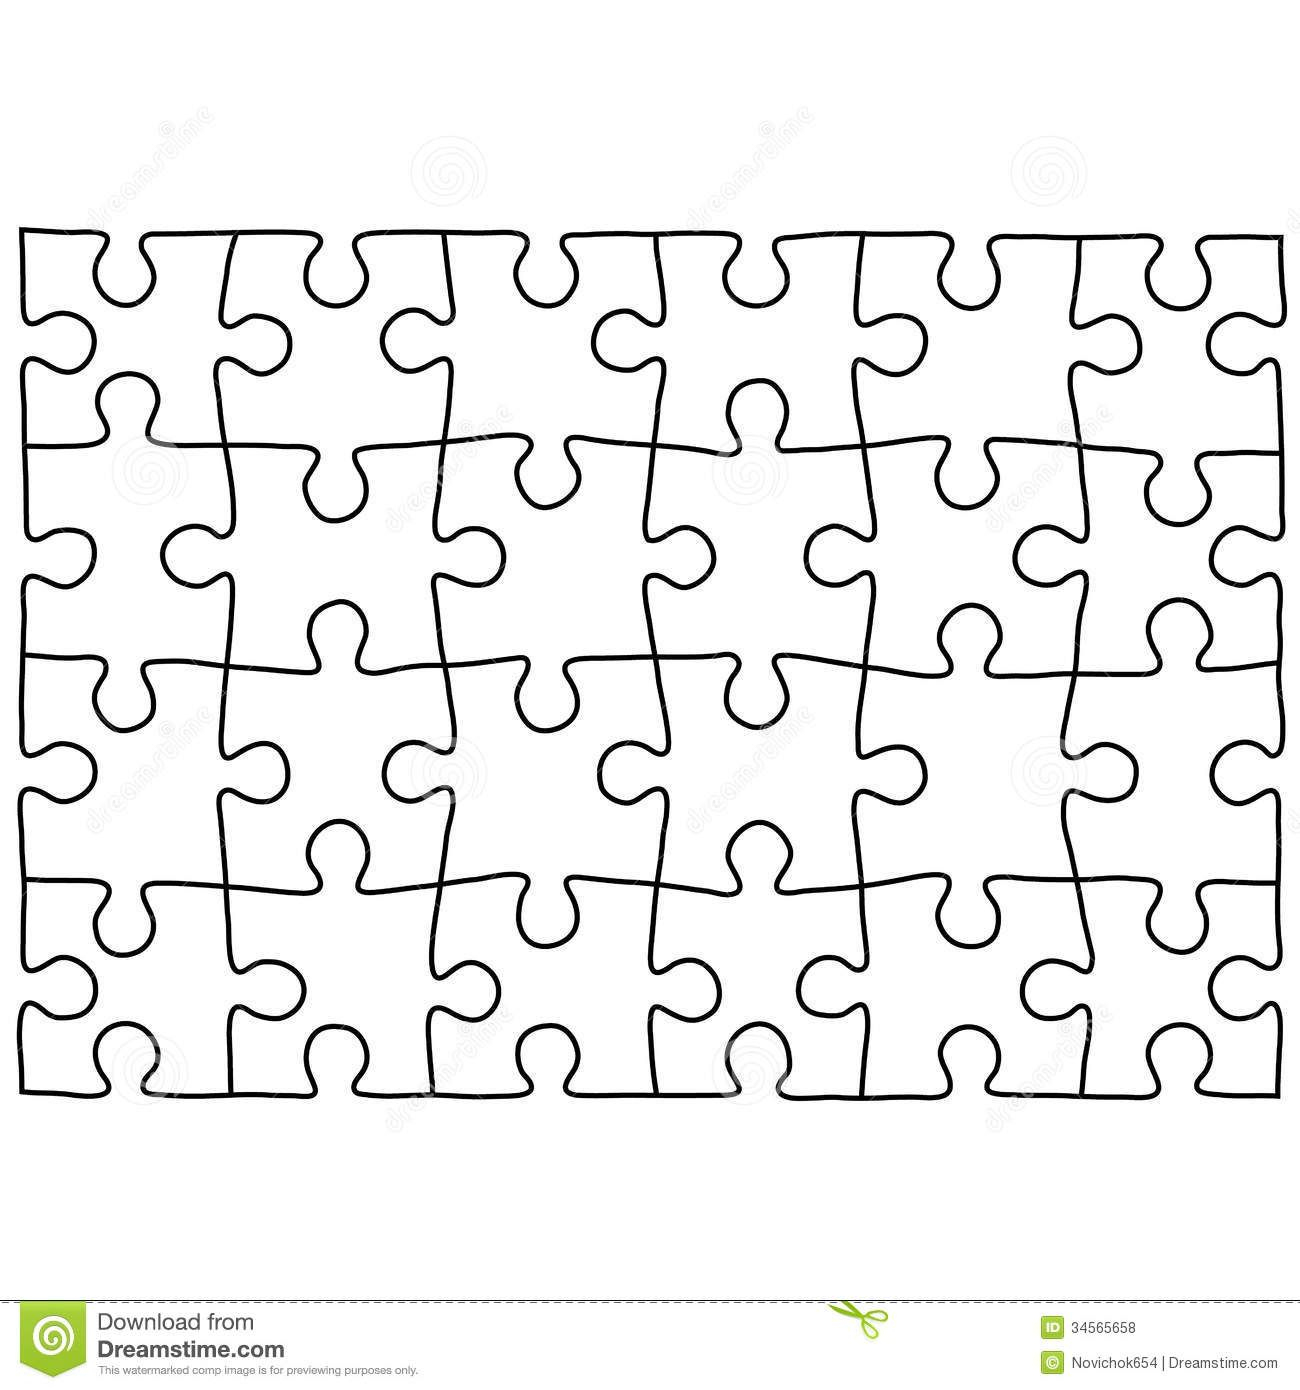 Jigsaw Puzzle Design Template | Free Puzzle Templates 1300.1390 - Printable Jigsaw Puzzle Maker